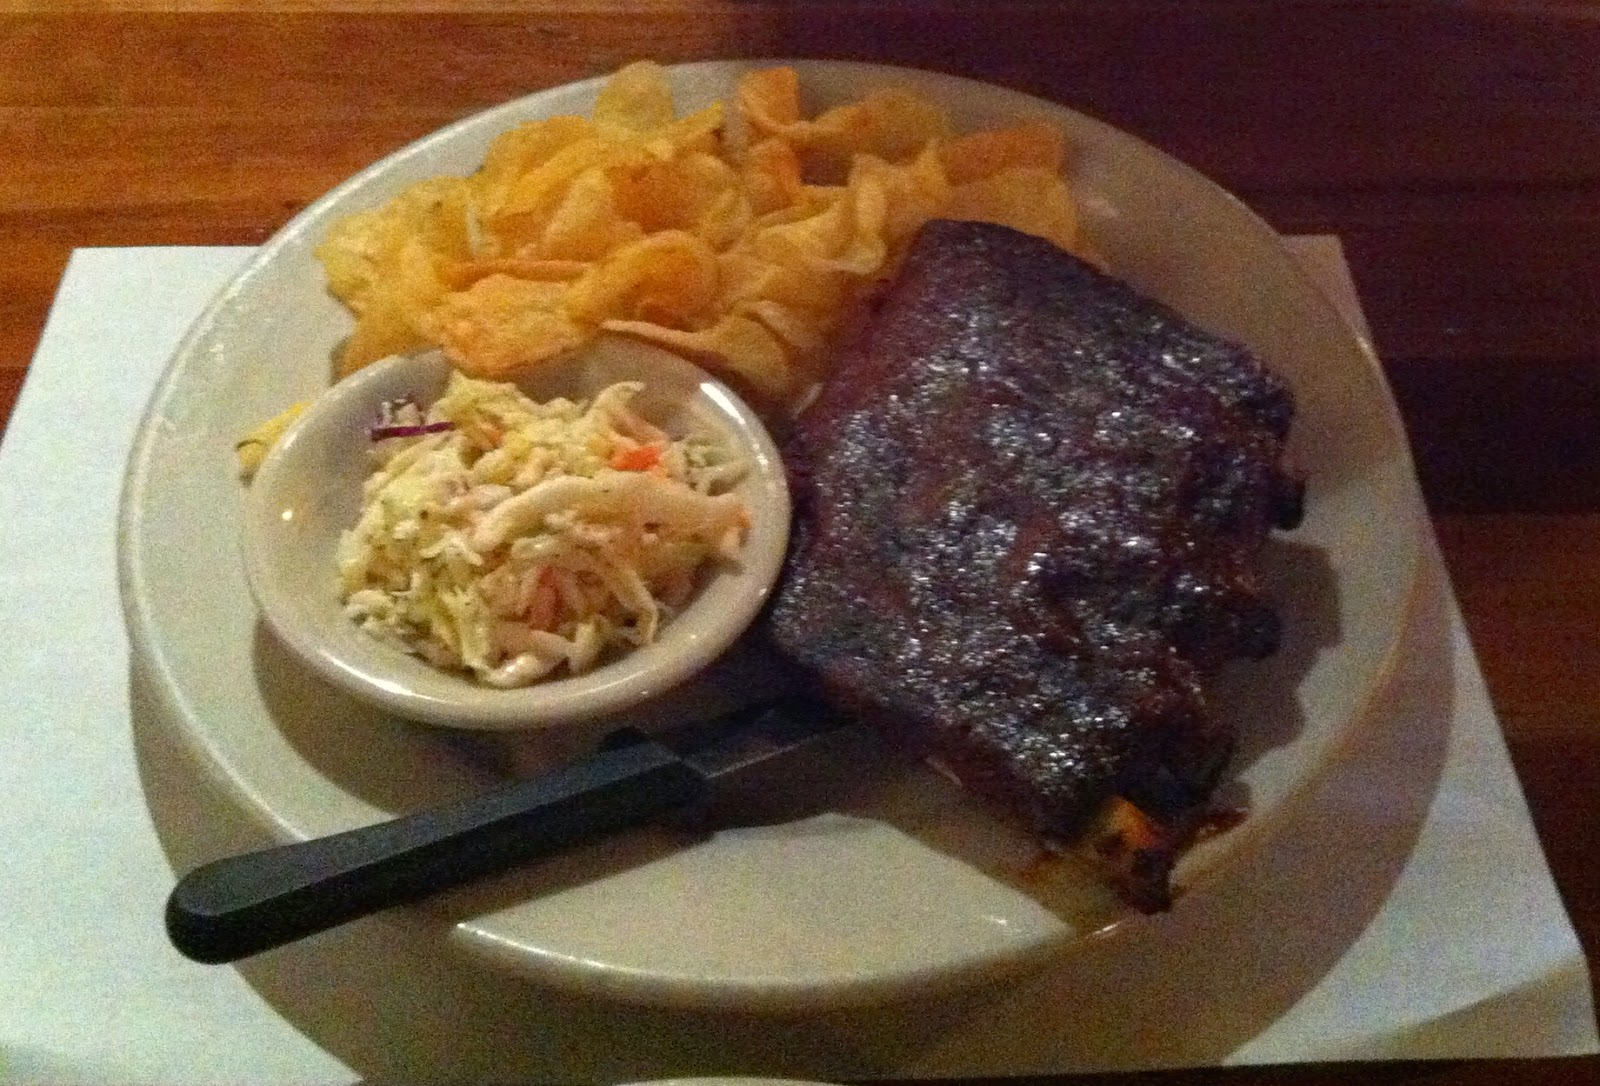 BBQ Ribs at Dogfish Bar and Grille by Don Taylor | CC BY CA